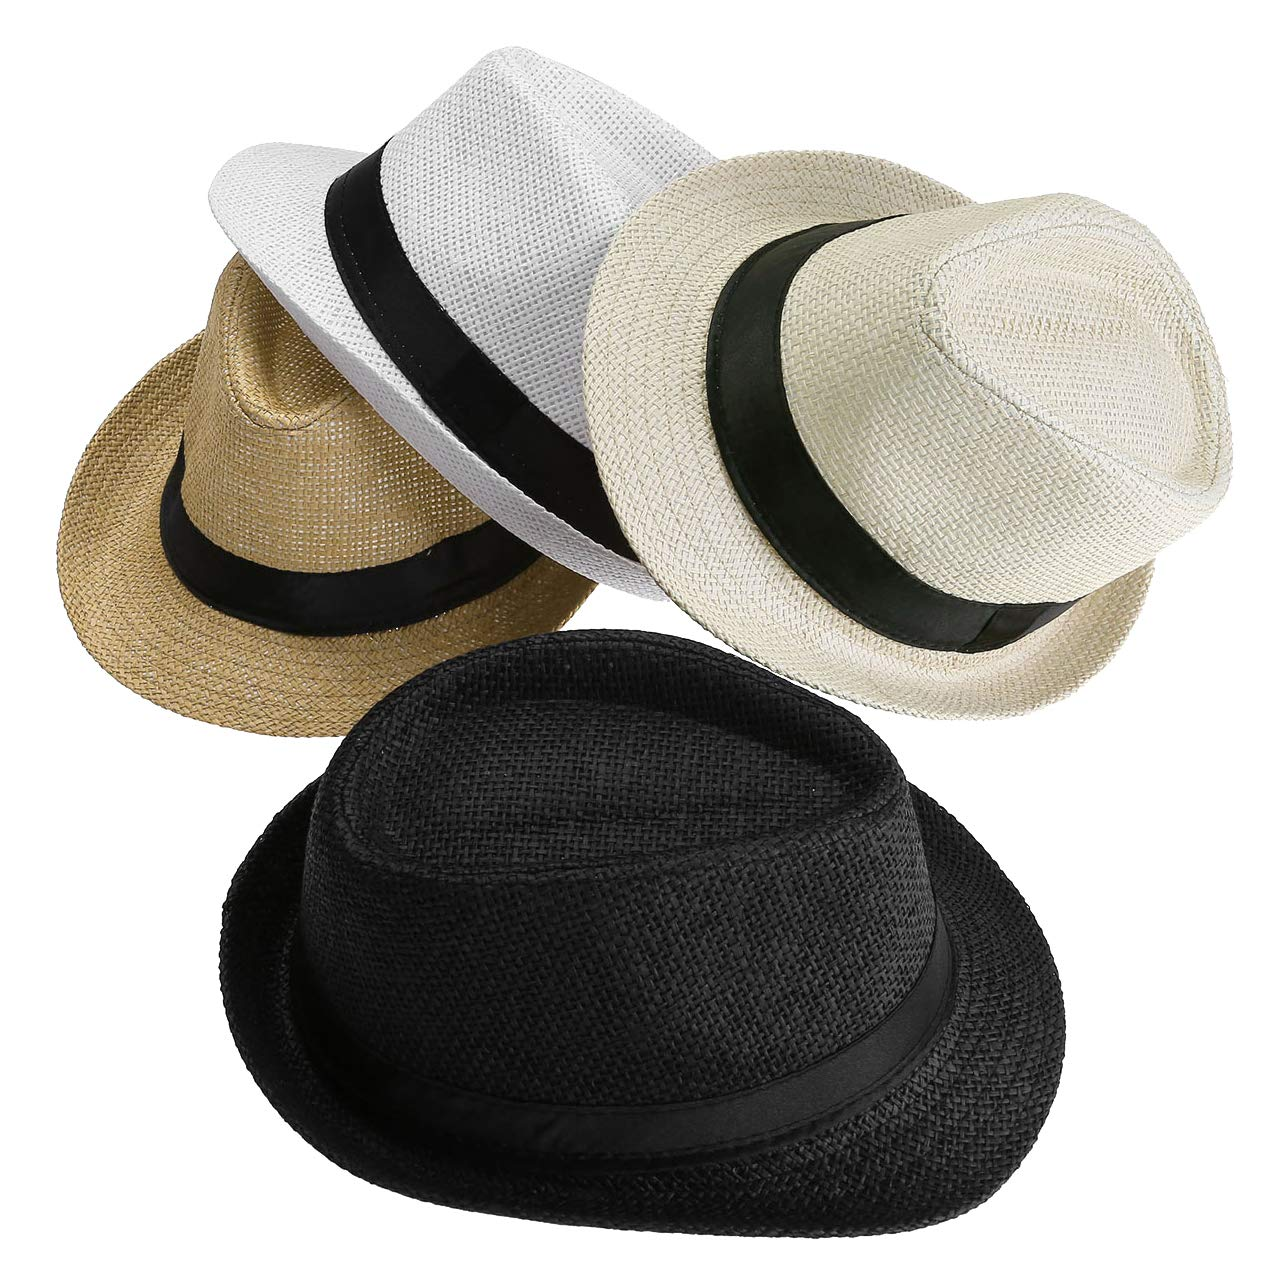 FALETO Unisex Summer Panama Straw Fedora Hat Short Brim Beach Sun Cap Classic (#011 Pack for 4 Colros) by FALETO